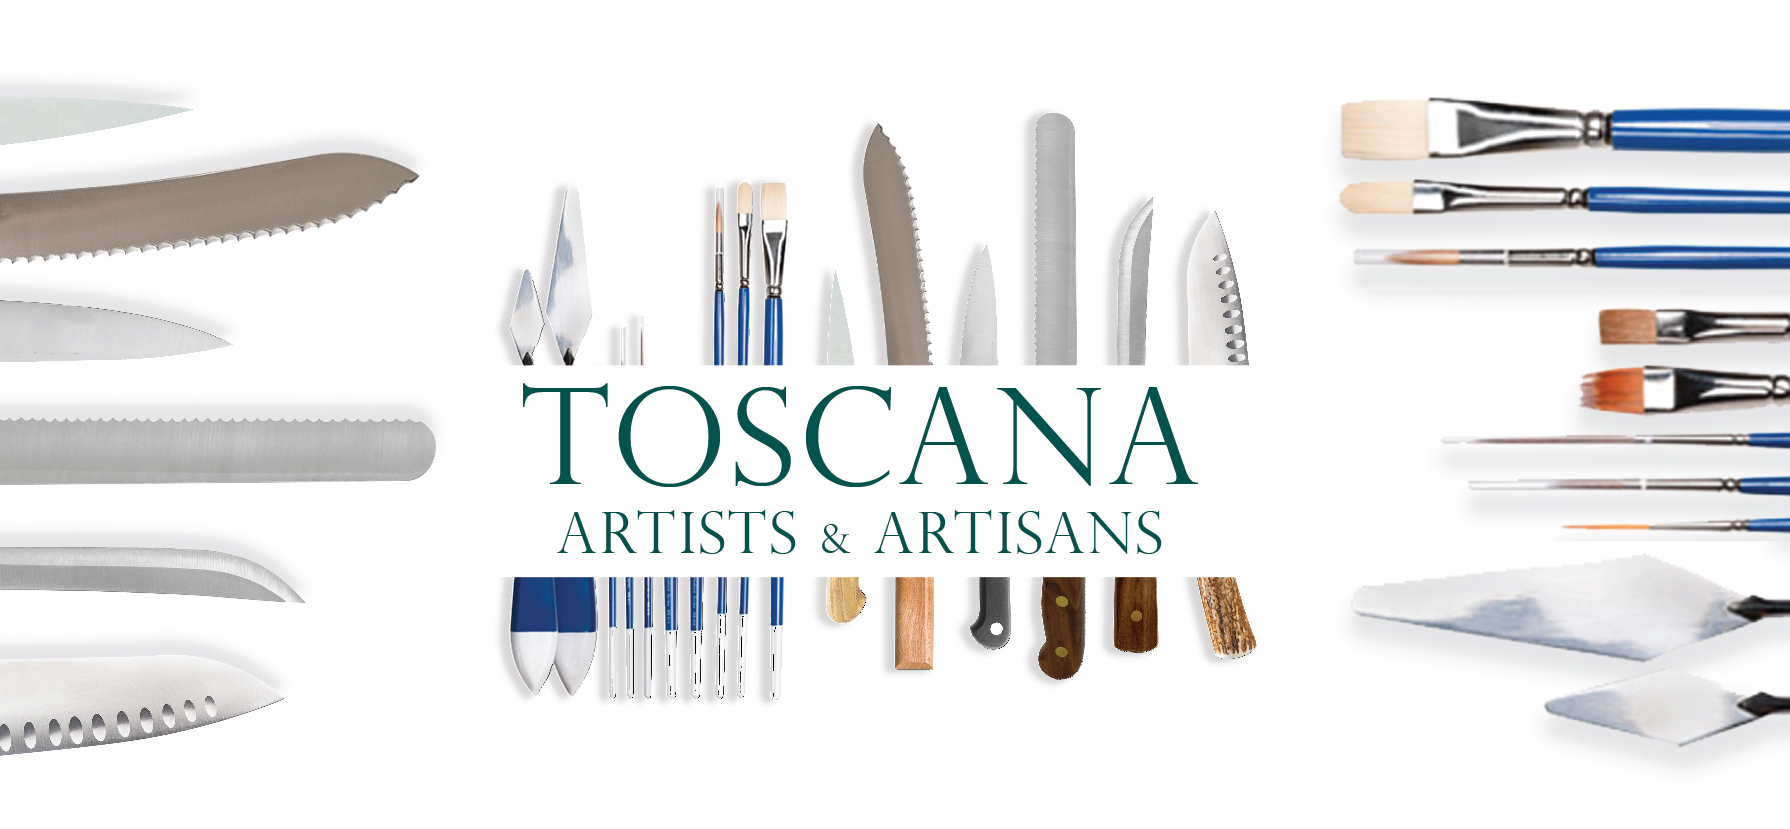 Toscana at Eataly